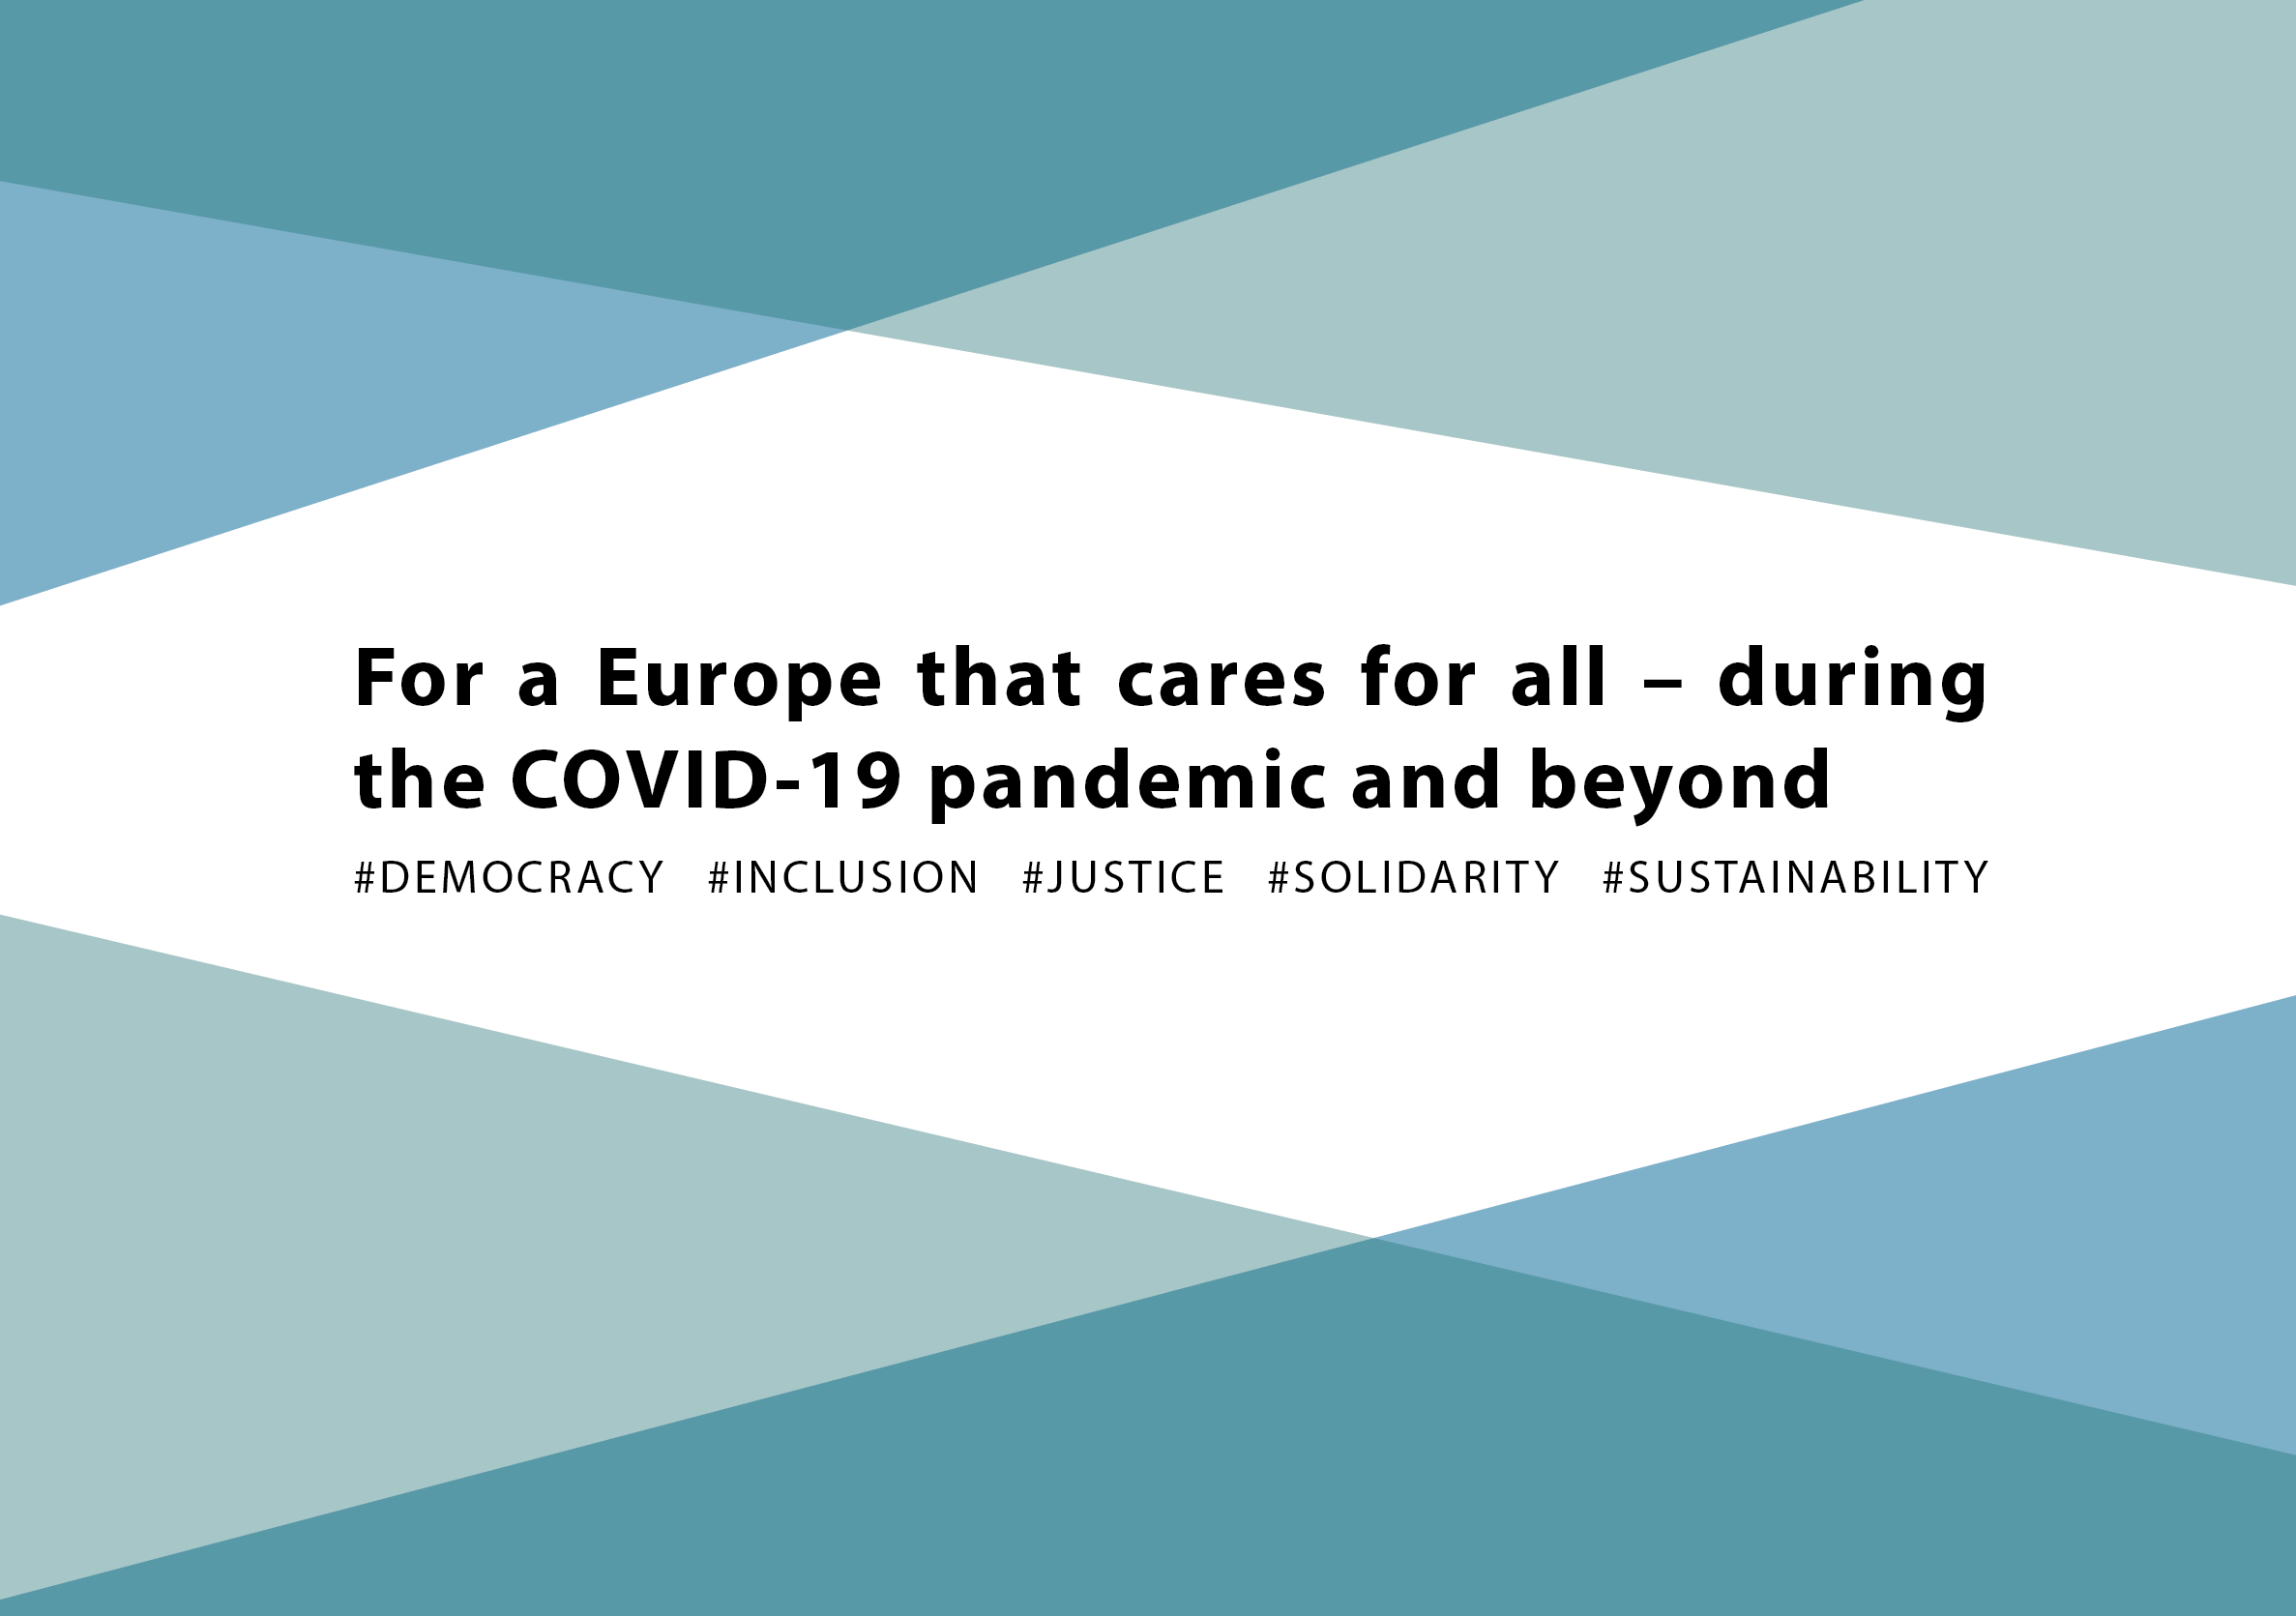 For a Europe that cares for all – during the COVID-19 pandemic and beyond